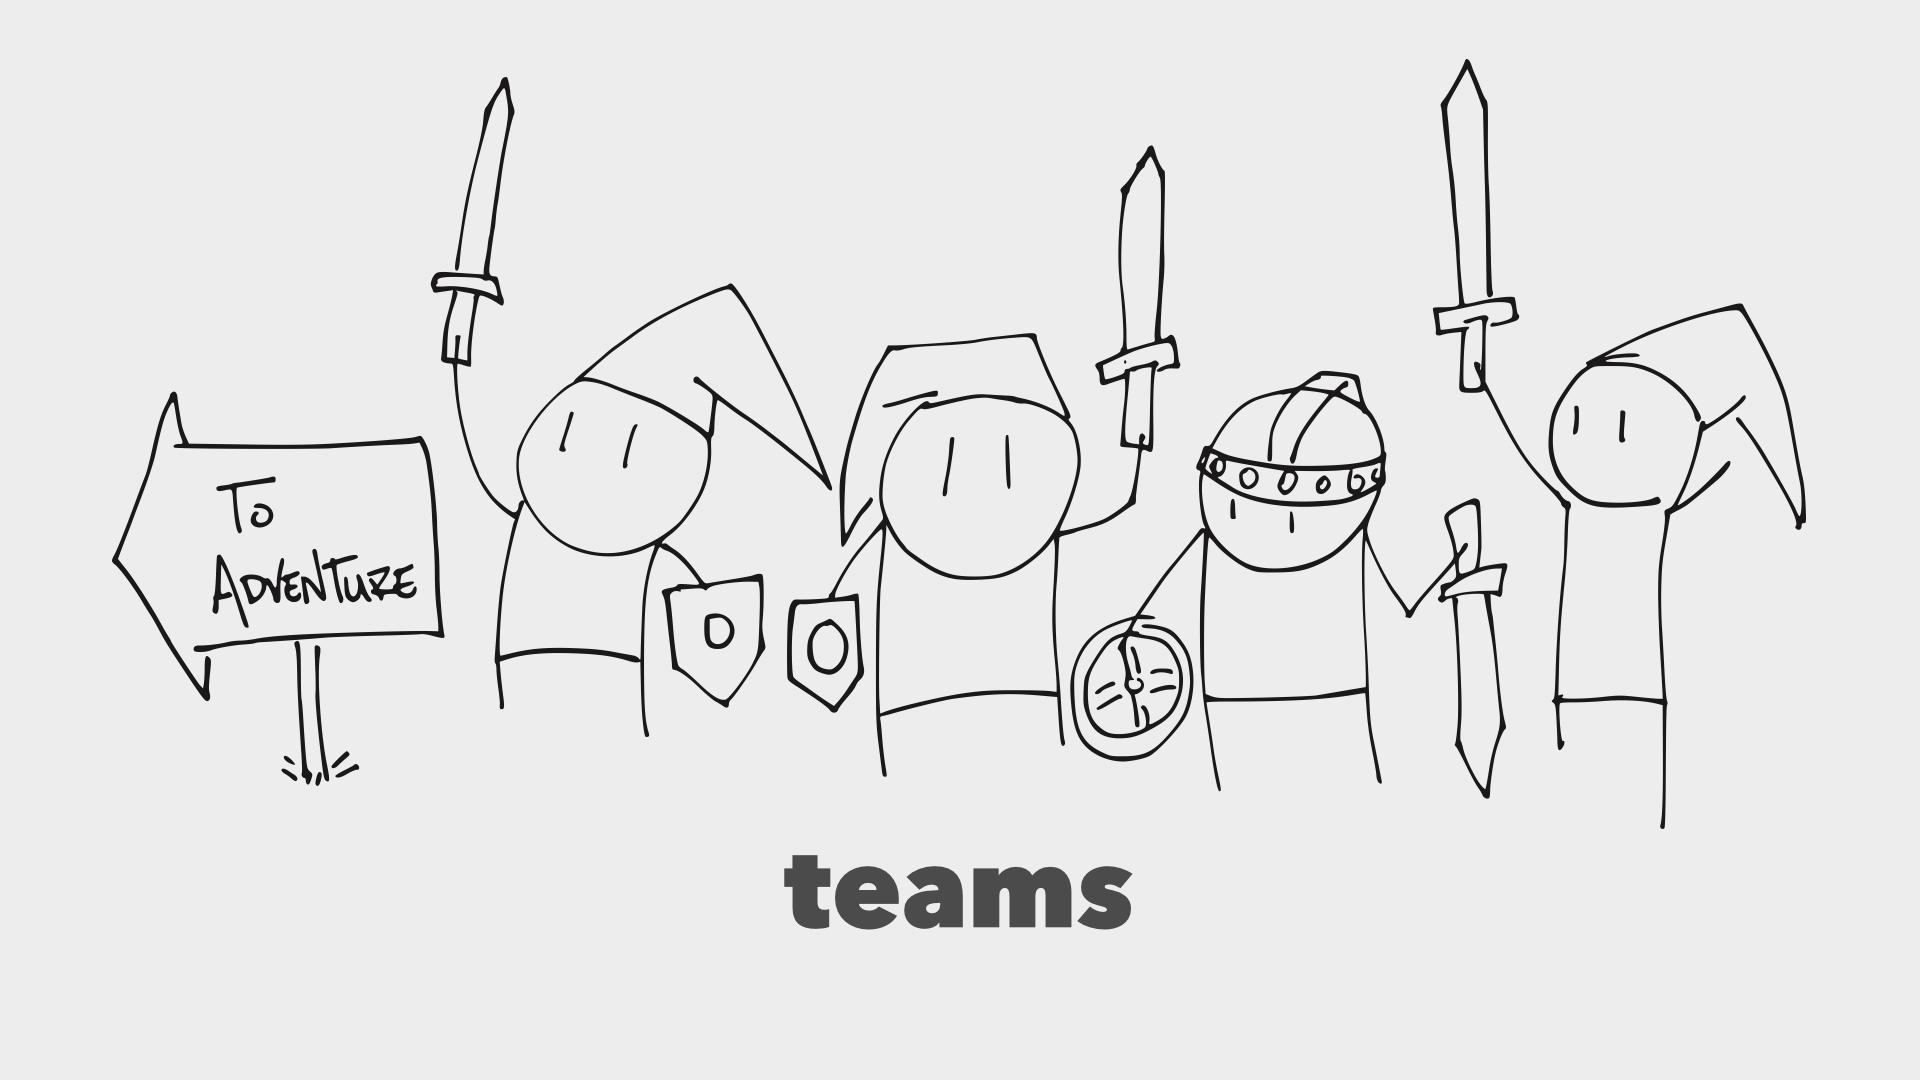 Teams! Huzzah!